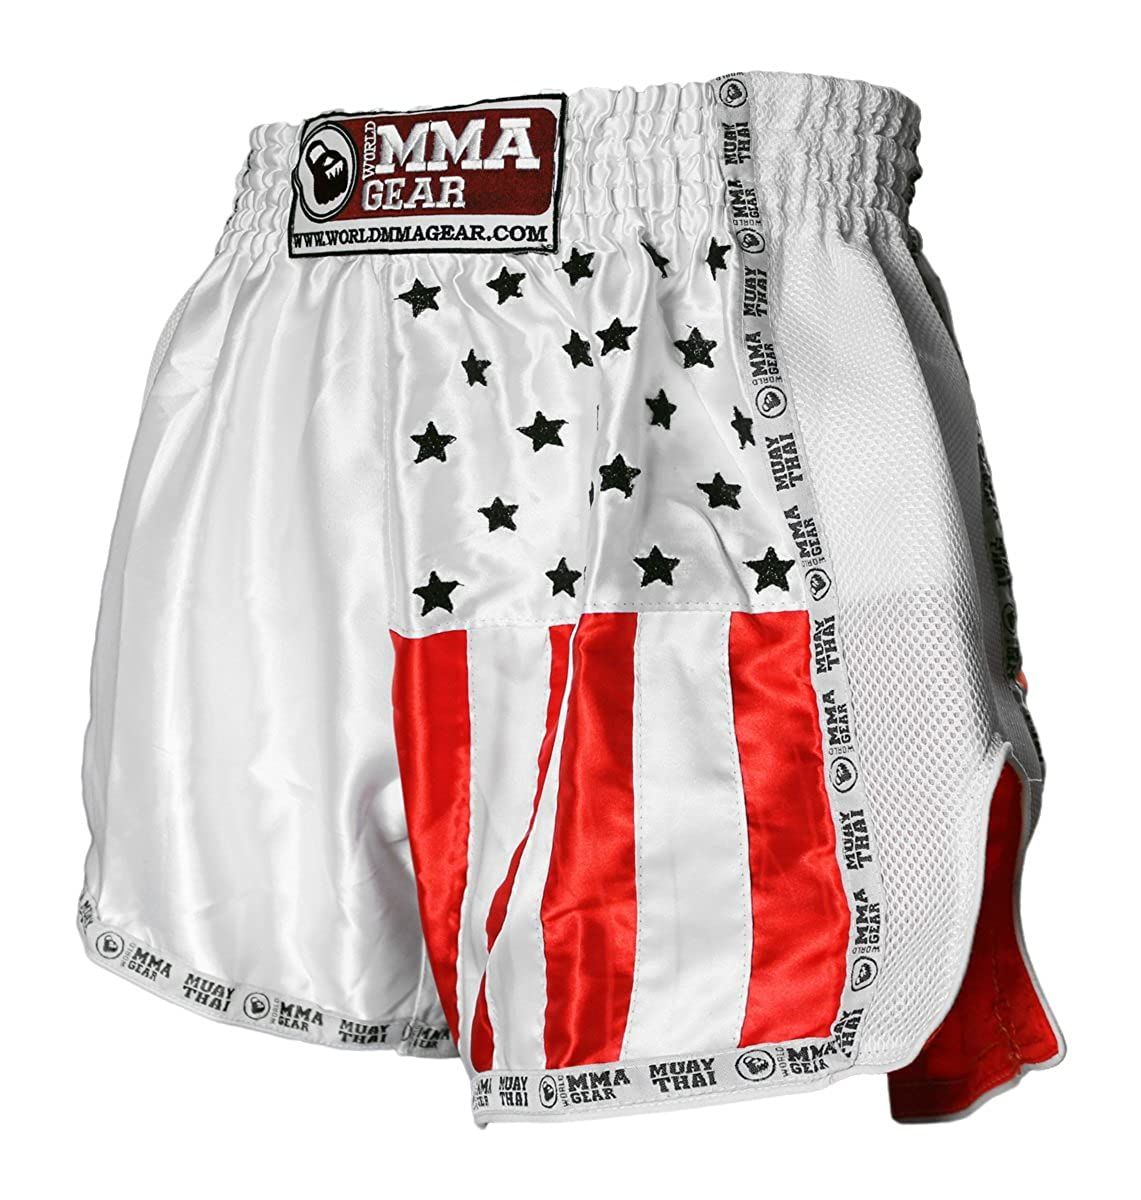 World MMA gear SHORTS メンズ B07DMKKC5K ホワイト 6XL (42'-44')